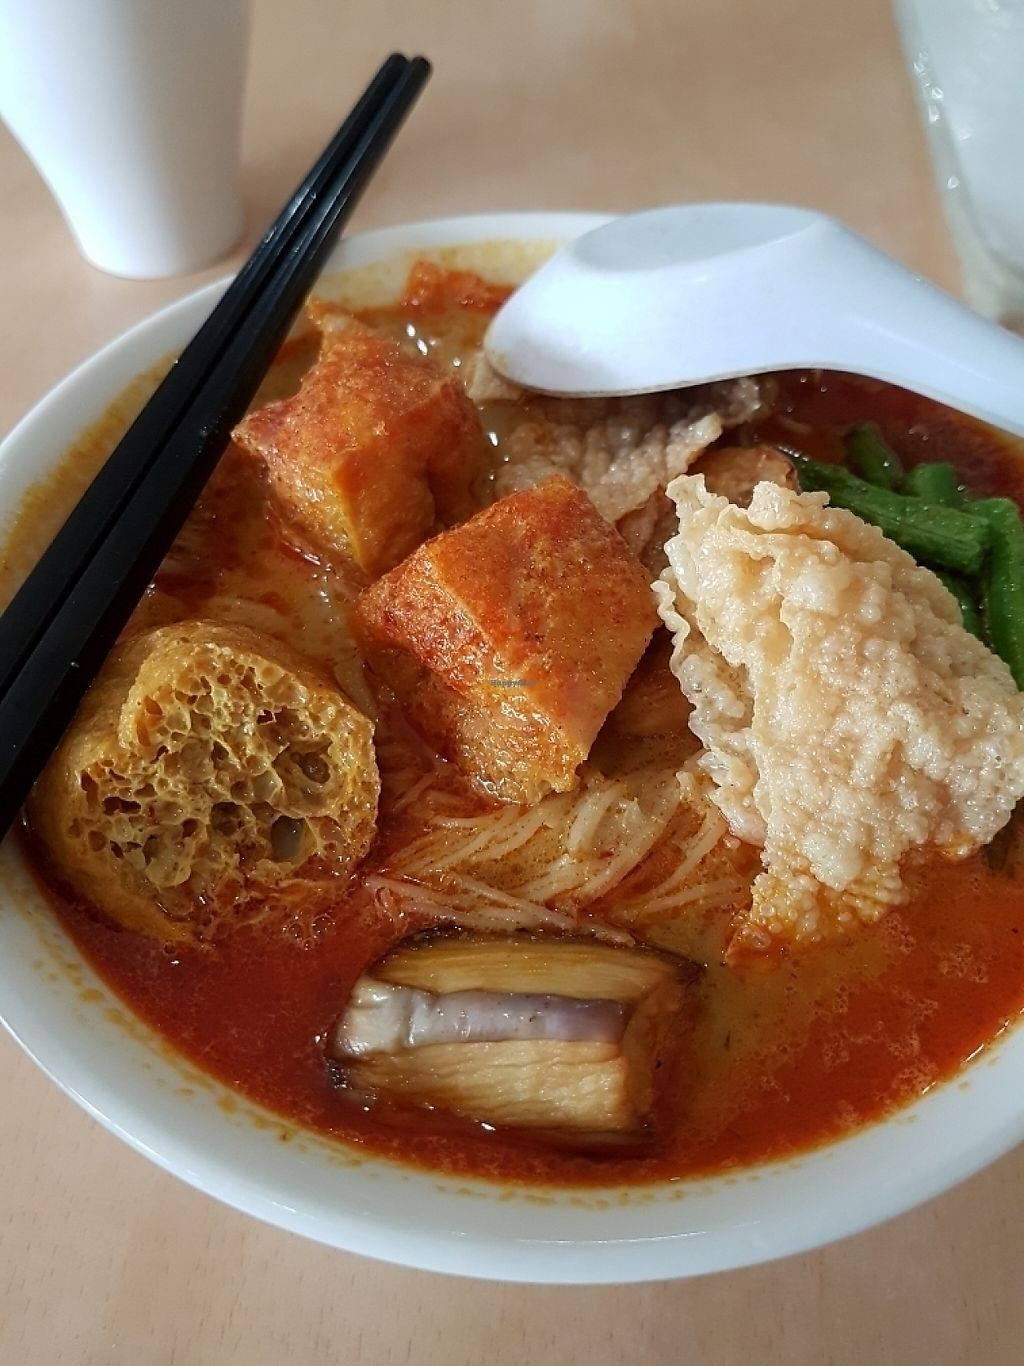 """Photo of Jing Si Vegetarian  by <a href=""""/members/profile/Raycklim01%40gmail.com"""">Raycklim01@gmail.com</a> <br/>curry noodle  <br/> May 9, 2017  - <a href='/contact/abuse/image/19728/257310'>Report</a>"""